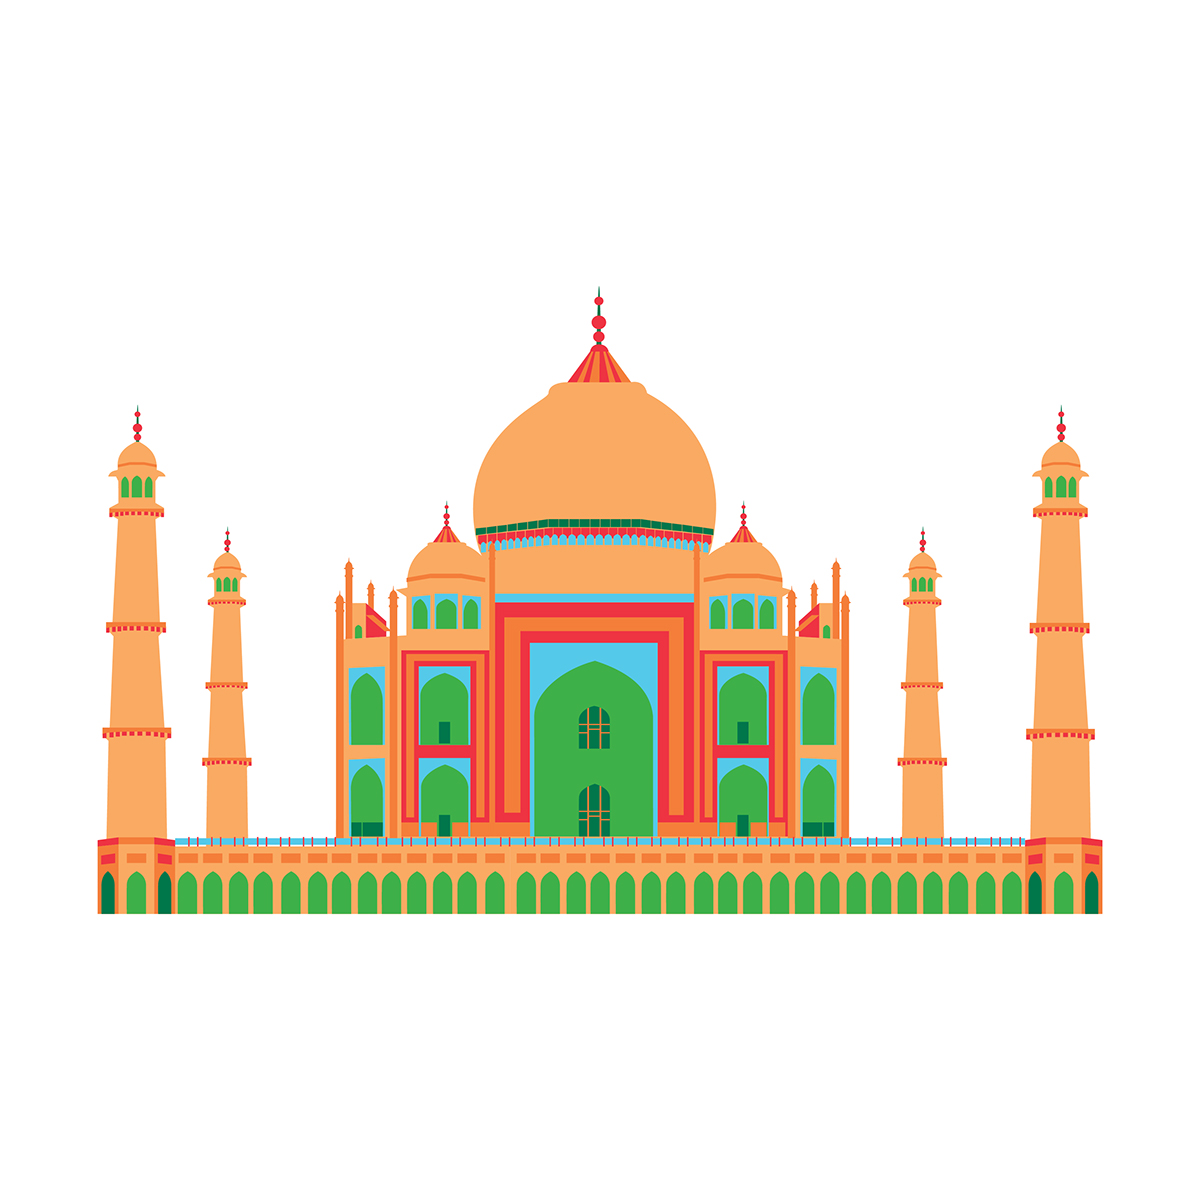 Adobe clipart building indian. Monuments of india on